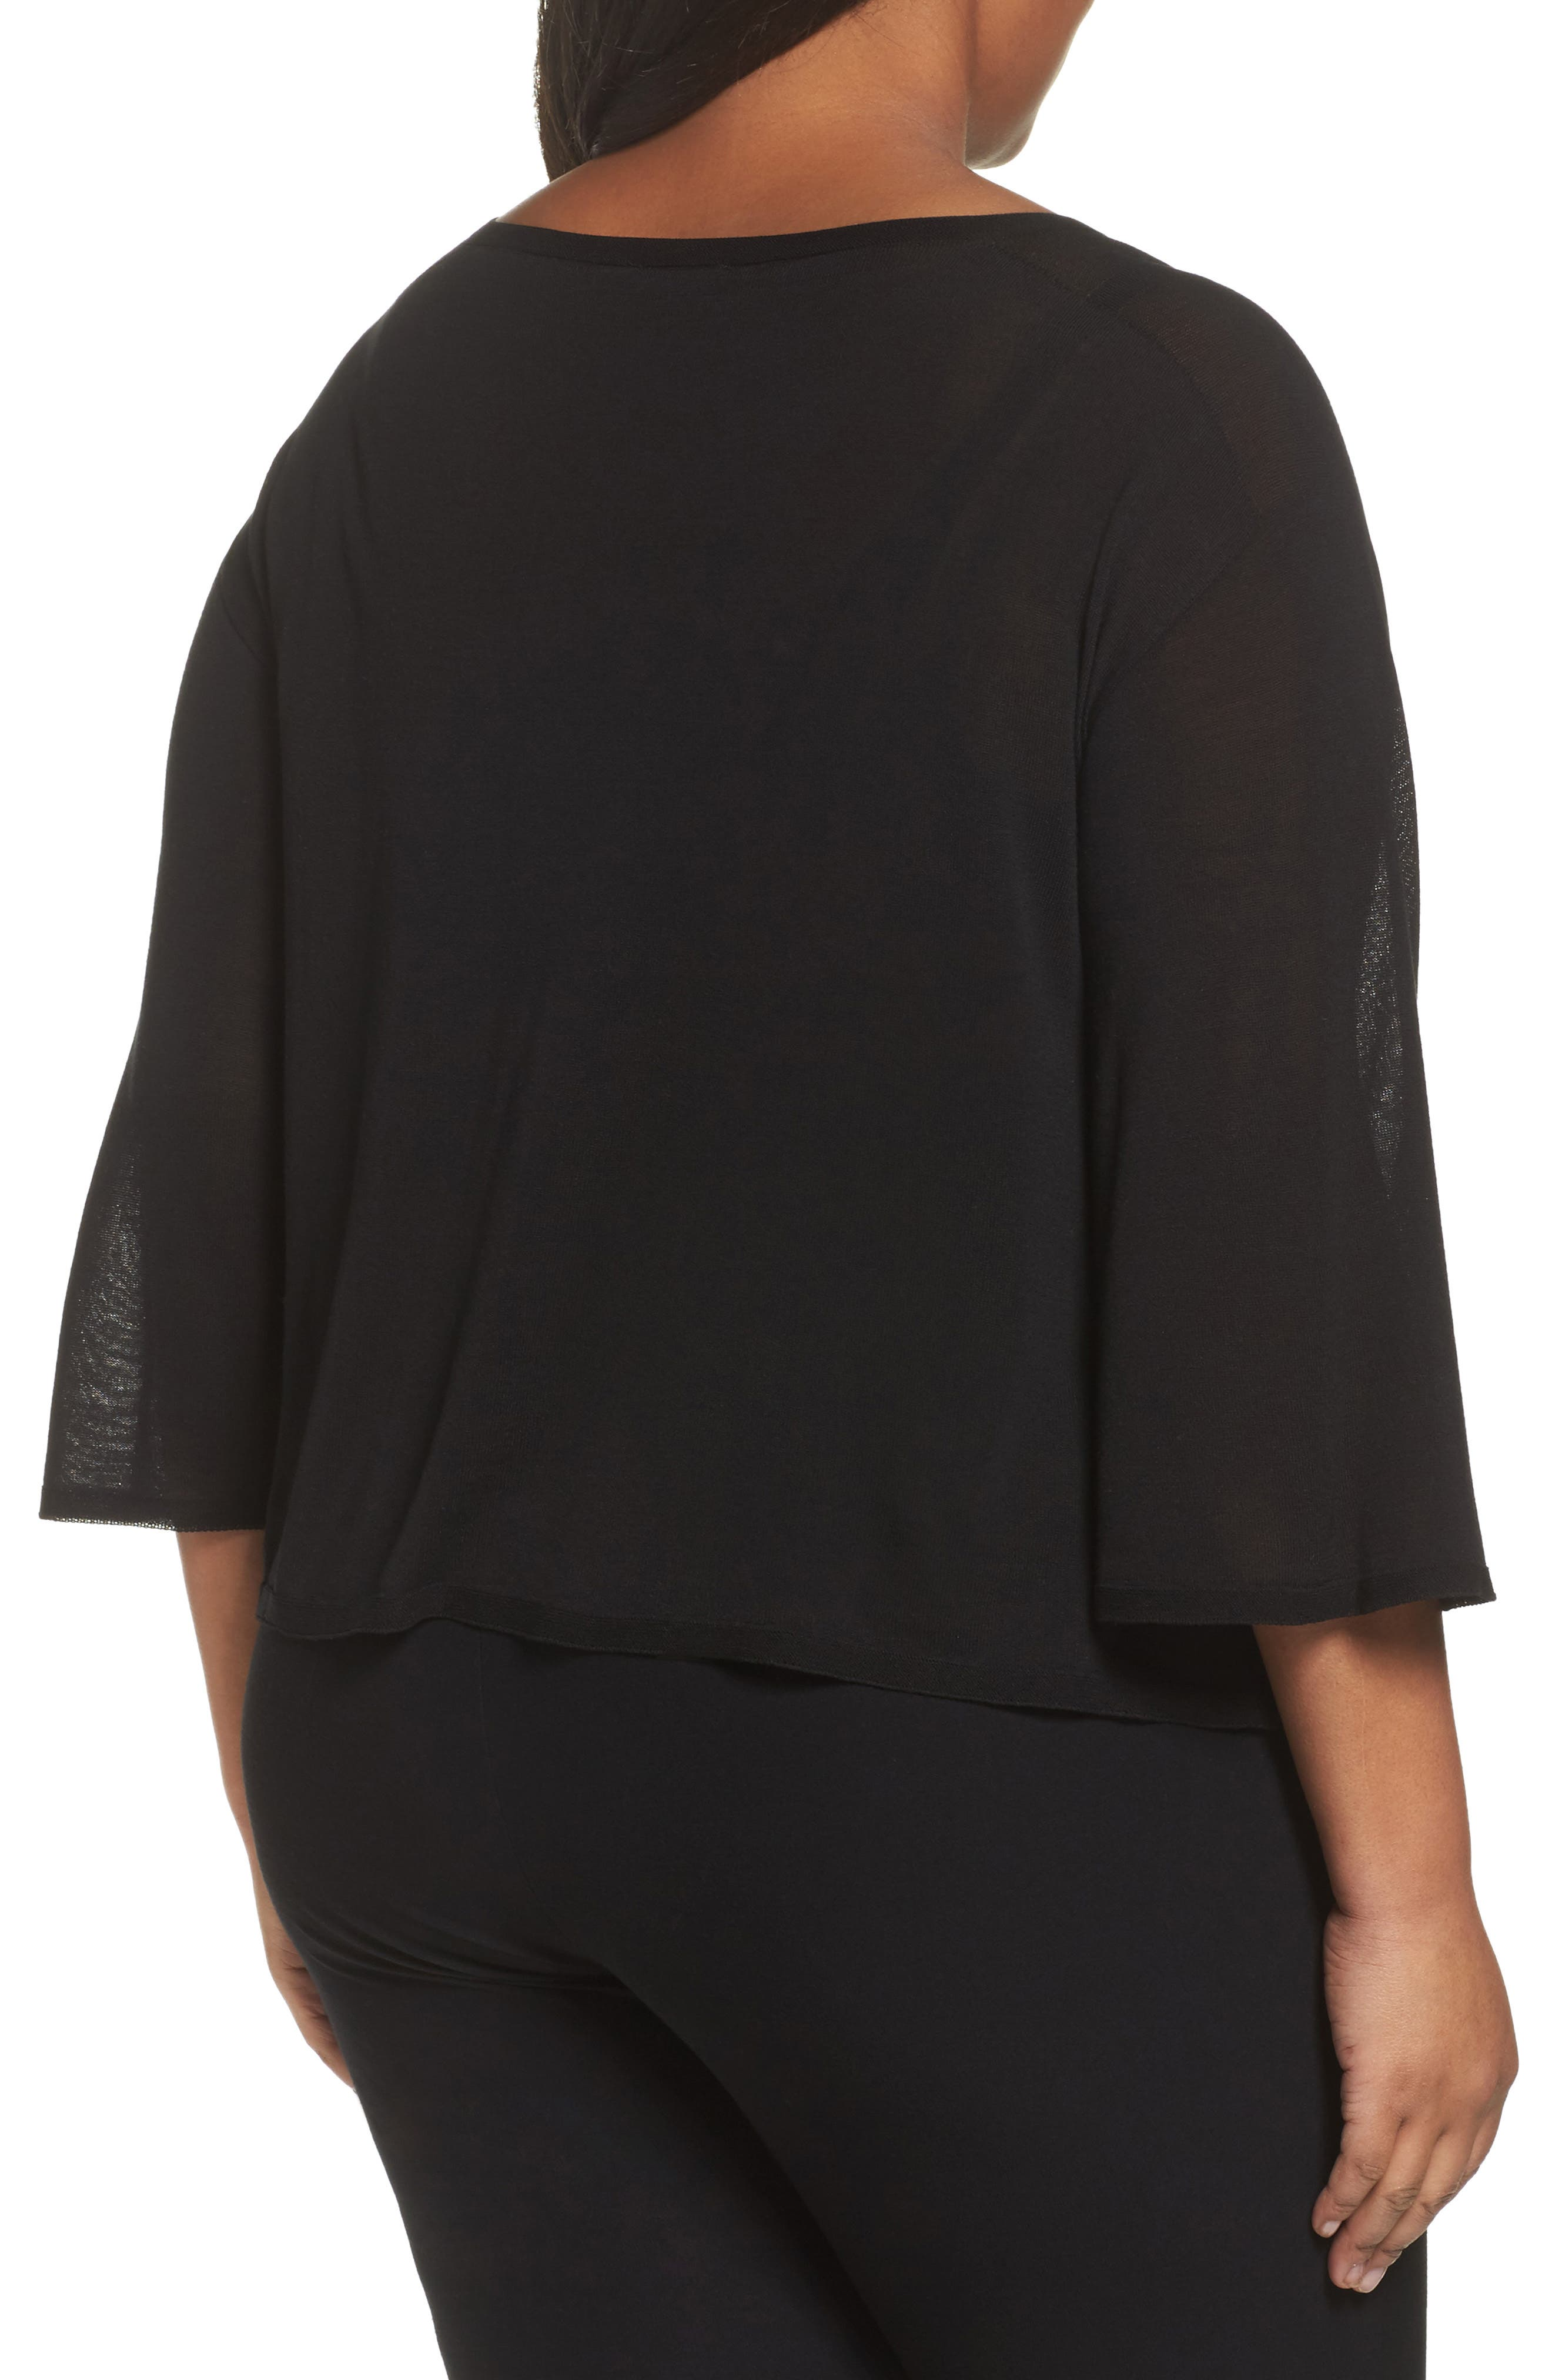 Tencel<sup>®</sup> Lyocell Lyocell Knit Sweater,                             Alternate thumbnail 2, color,                             Black